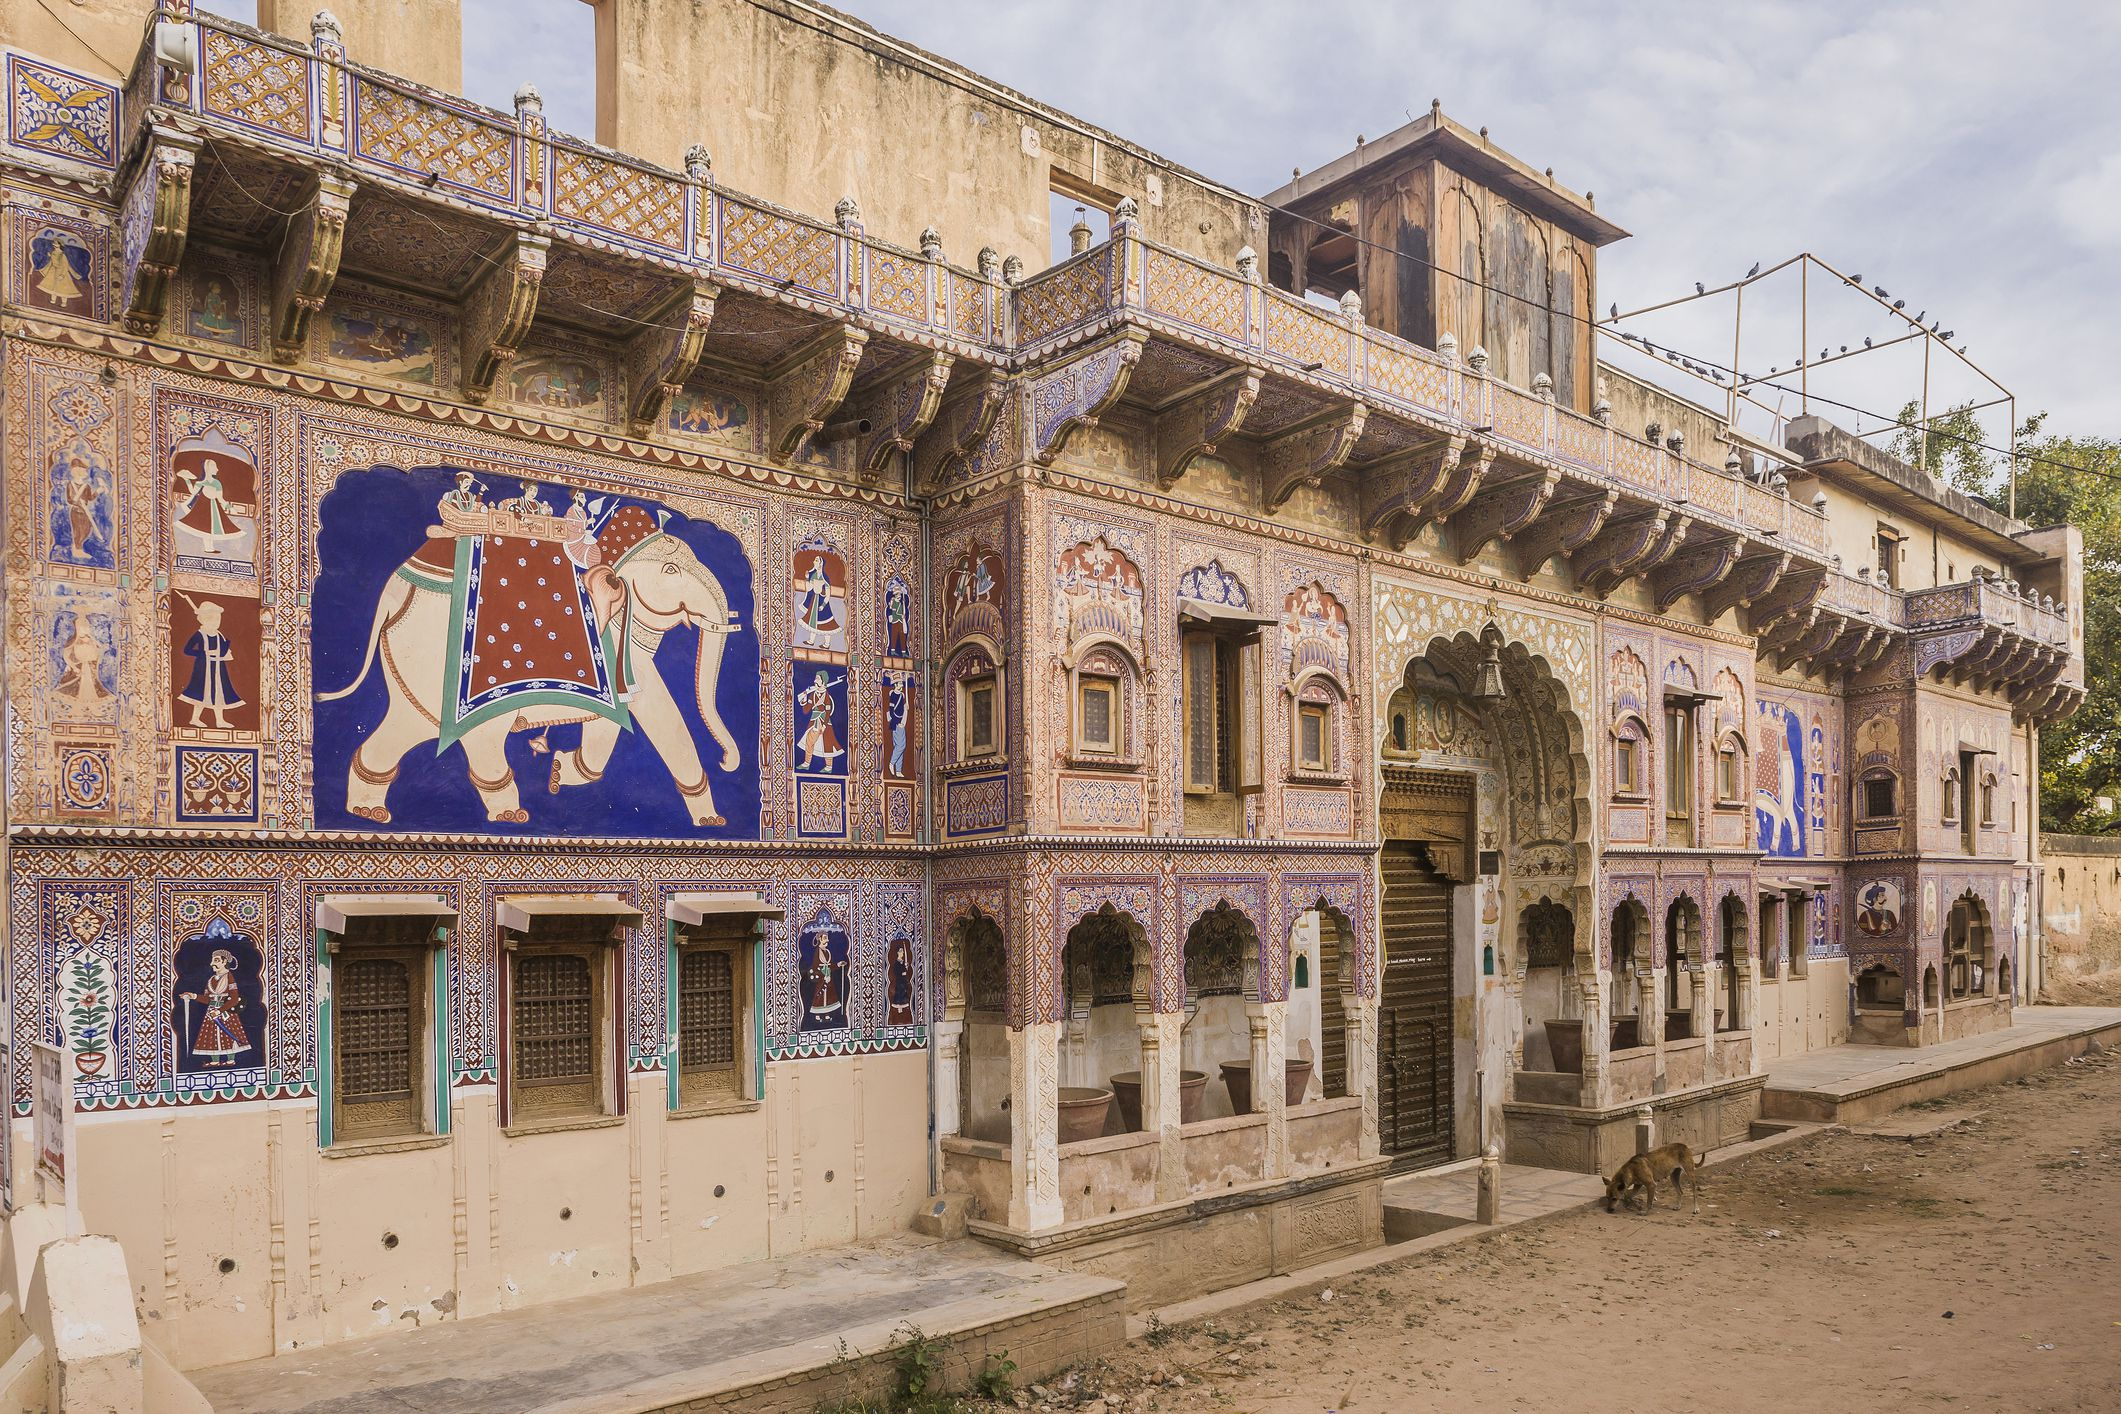 The entrance of a typical house (haveli)